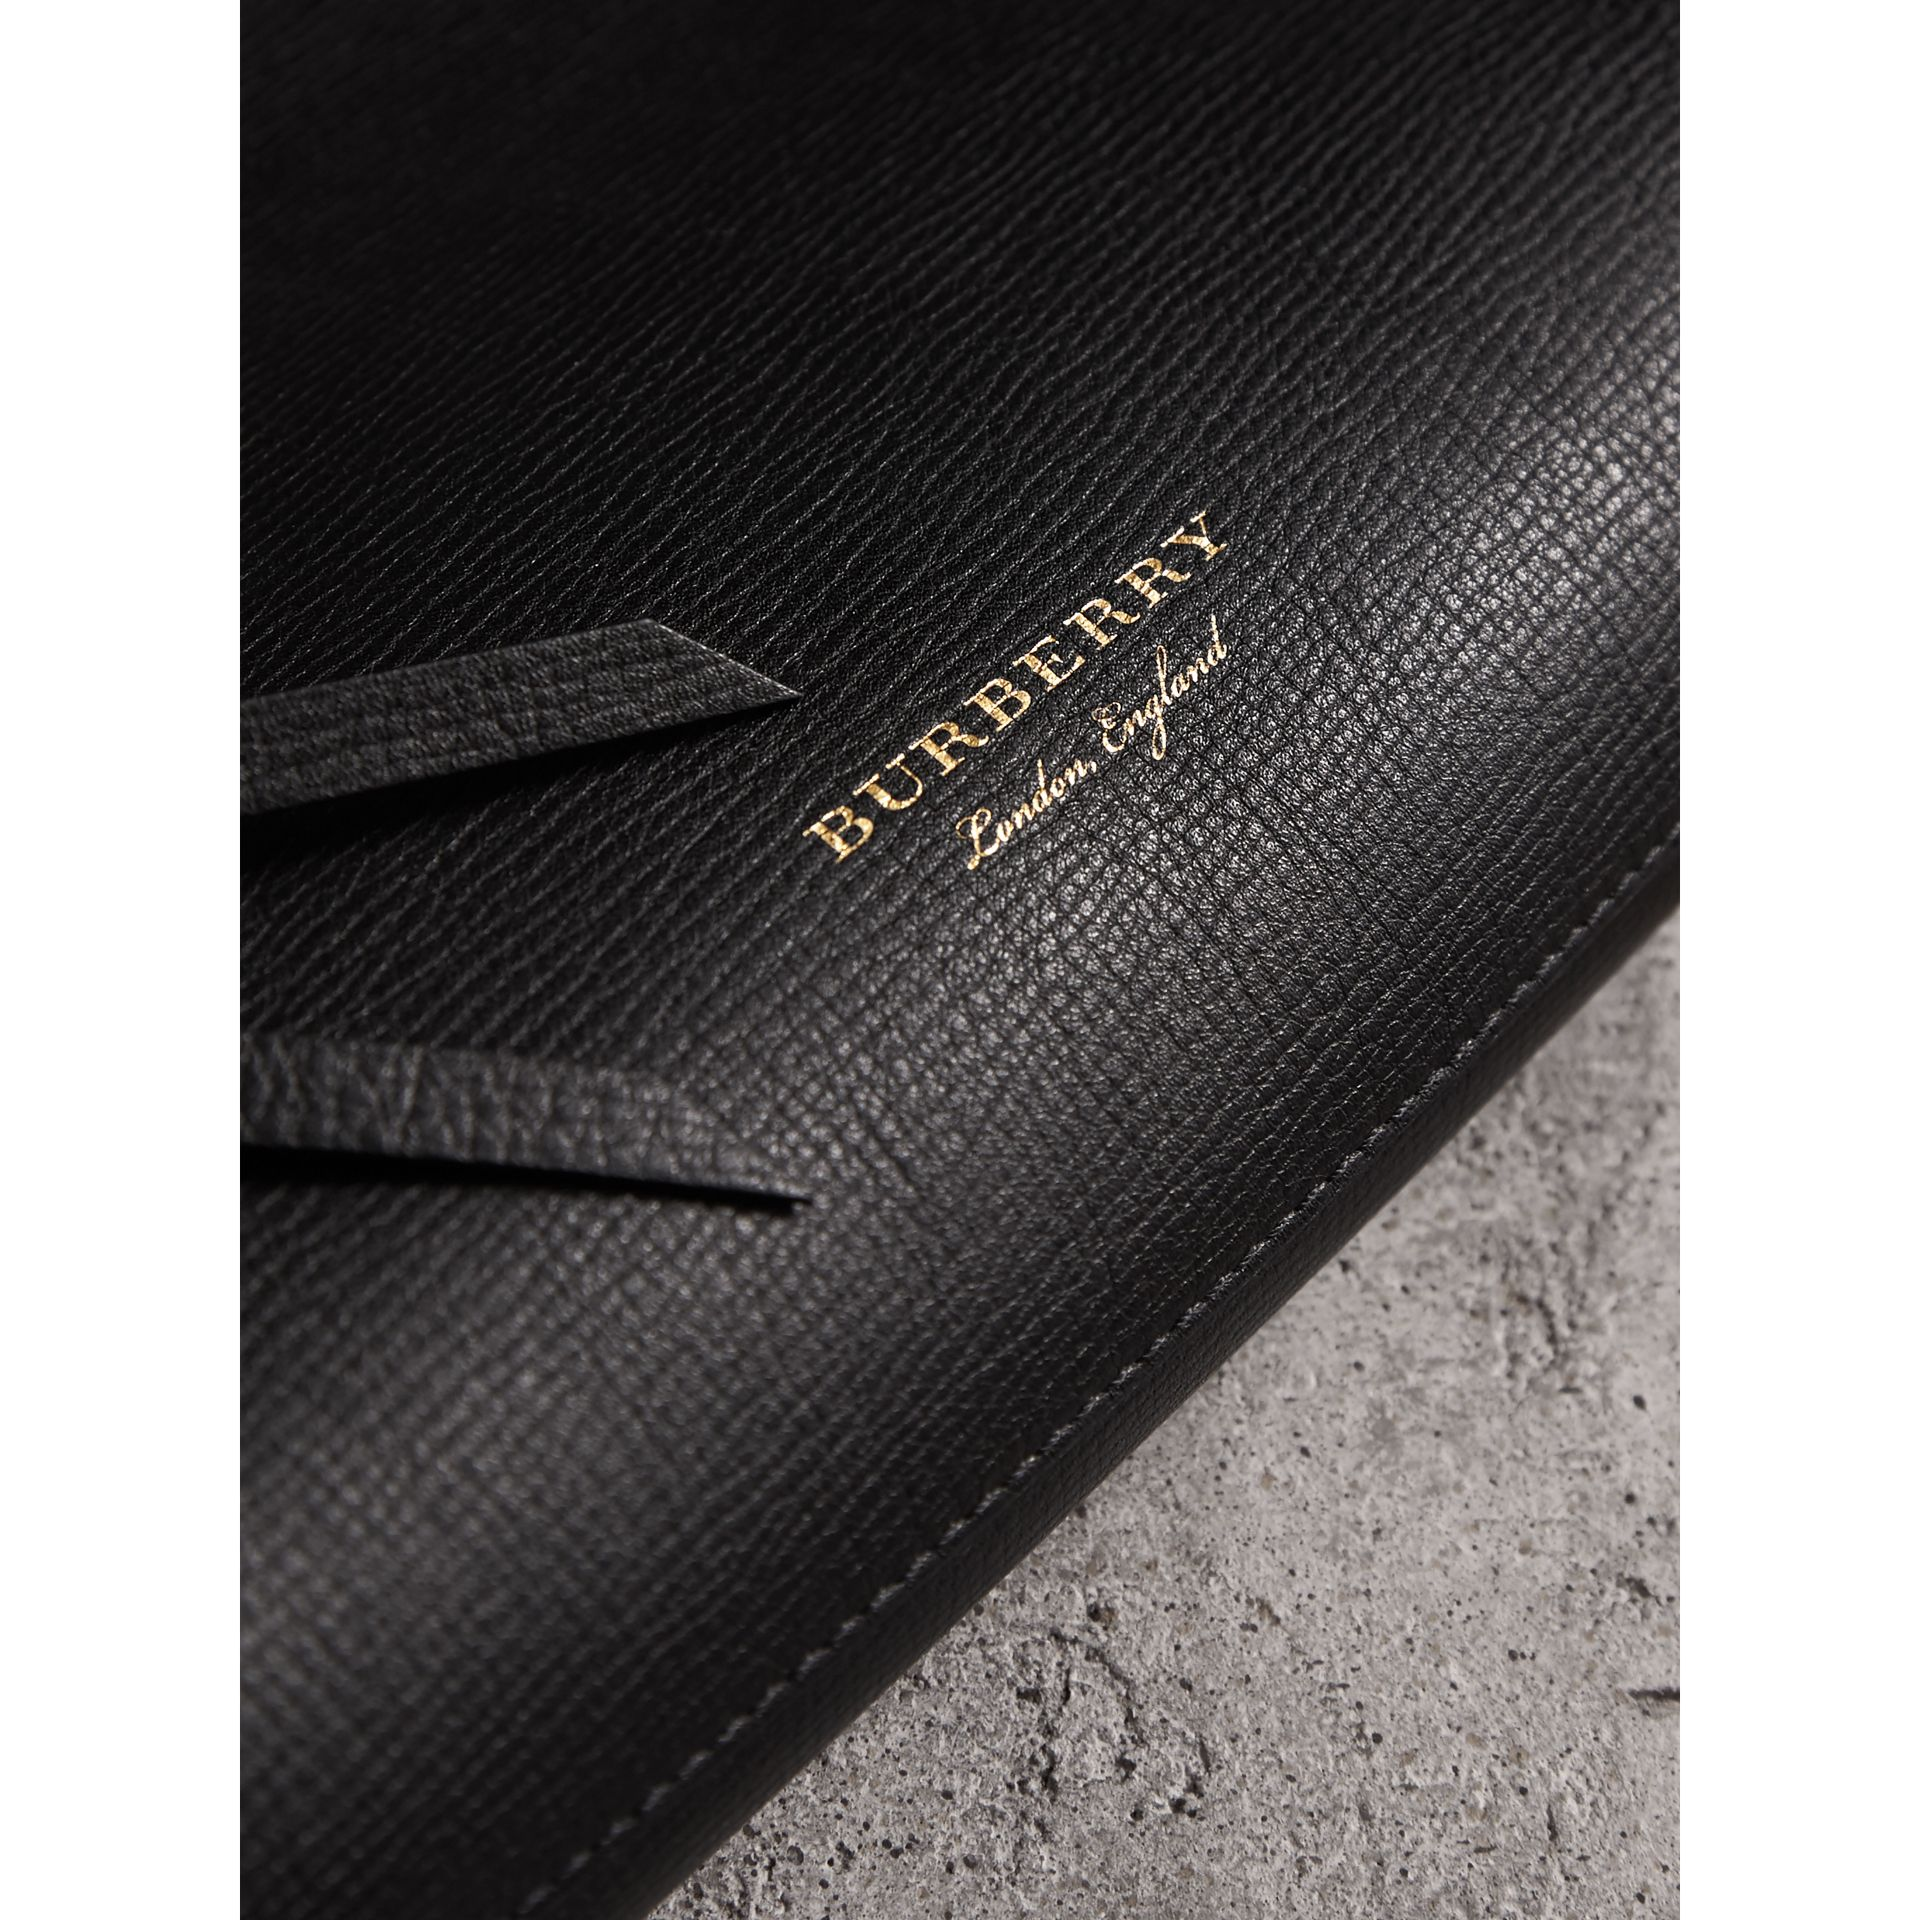 Grainy Leather Clutch Bag in Black - Women | Burberry Canada - gallery image 2